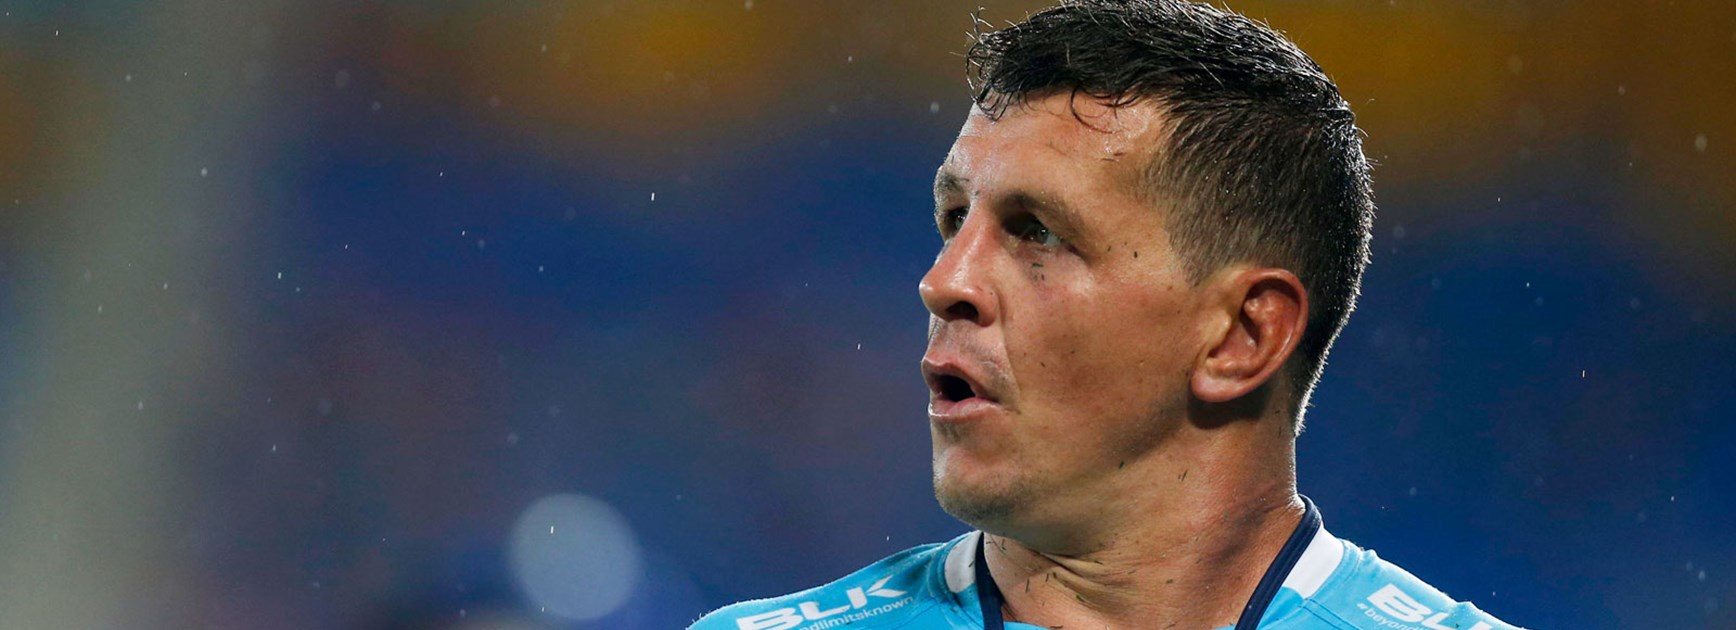 Greg Bird will play his 100th game for the Titans in Round 7.